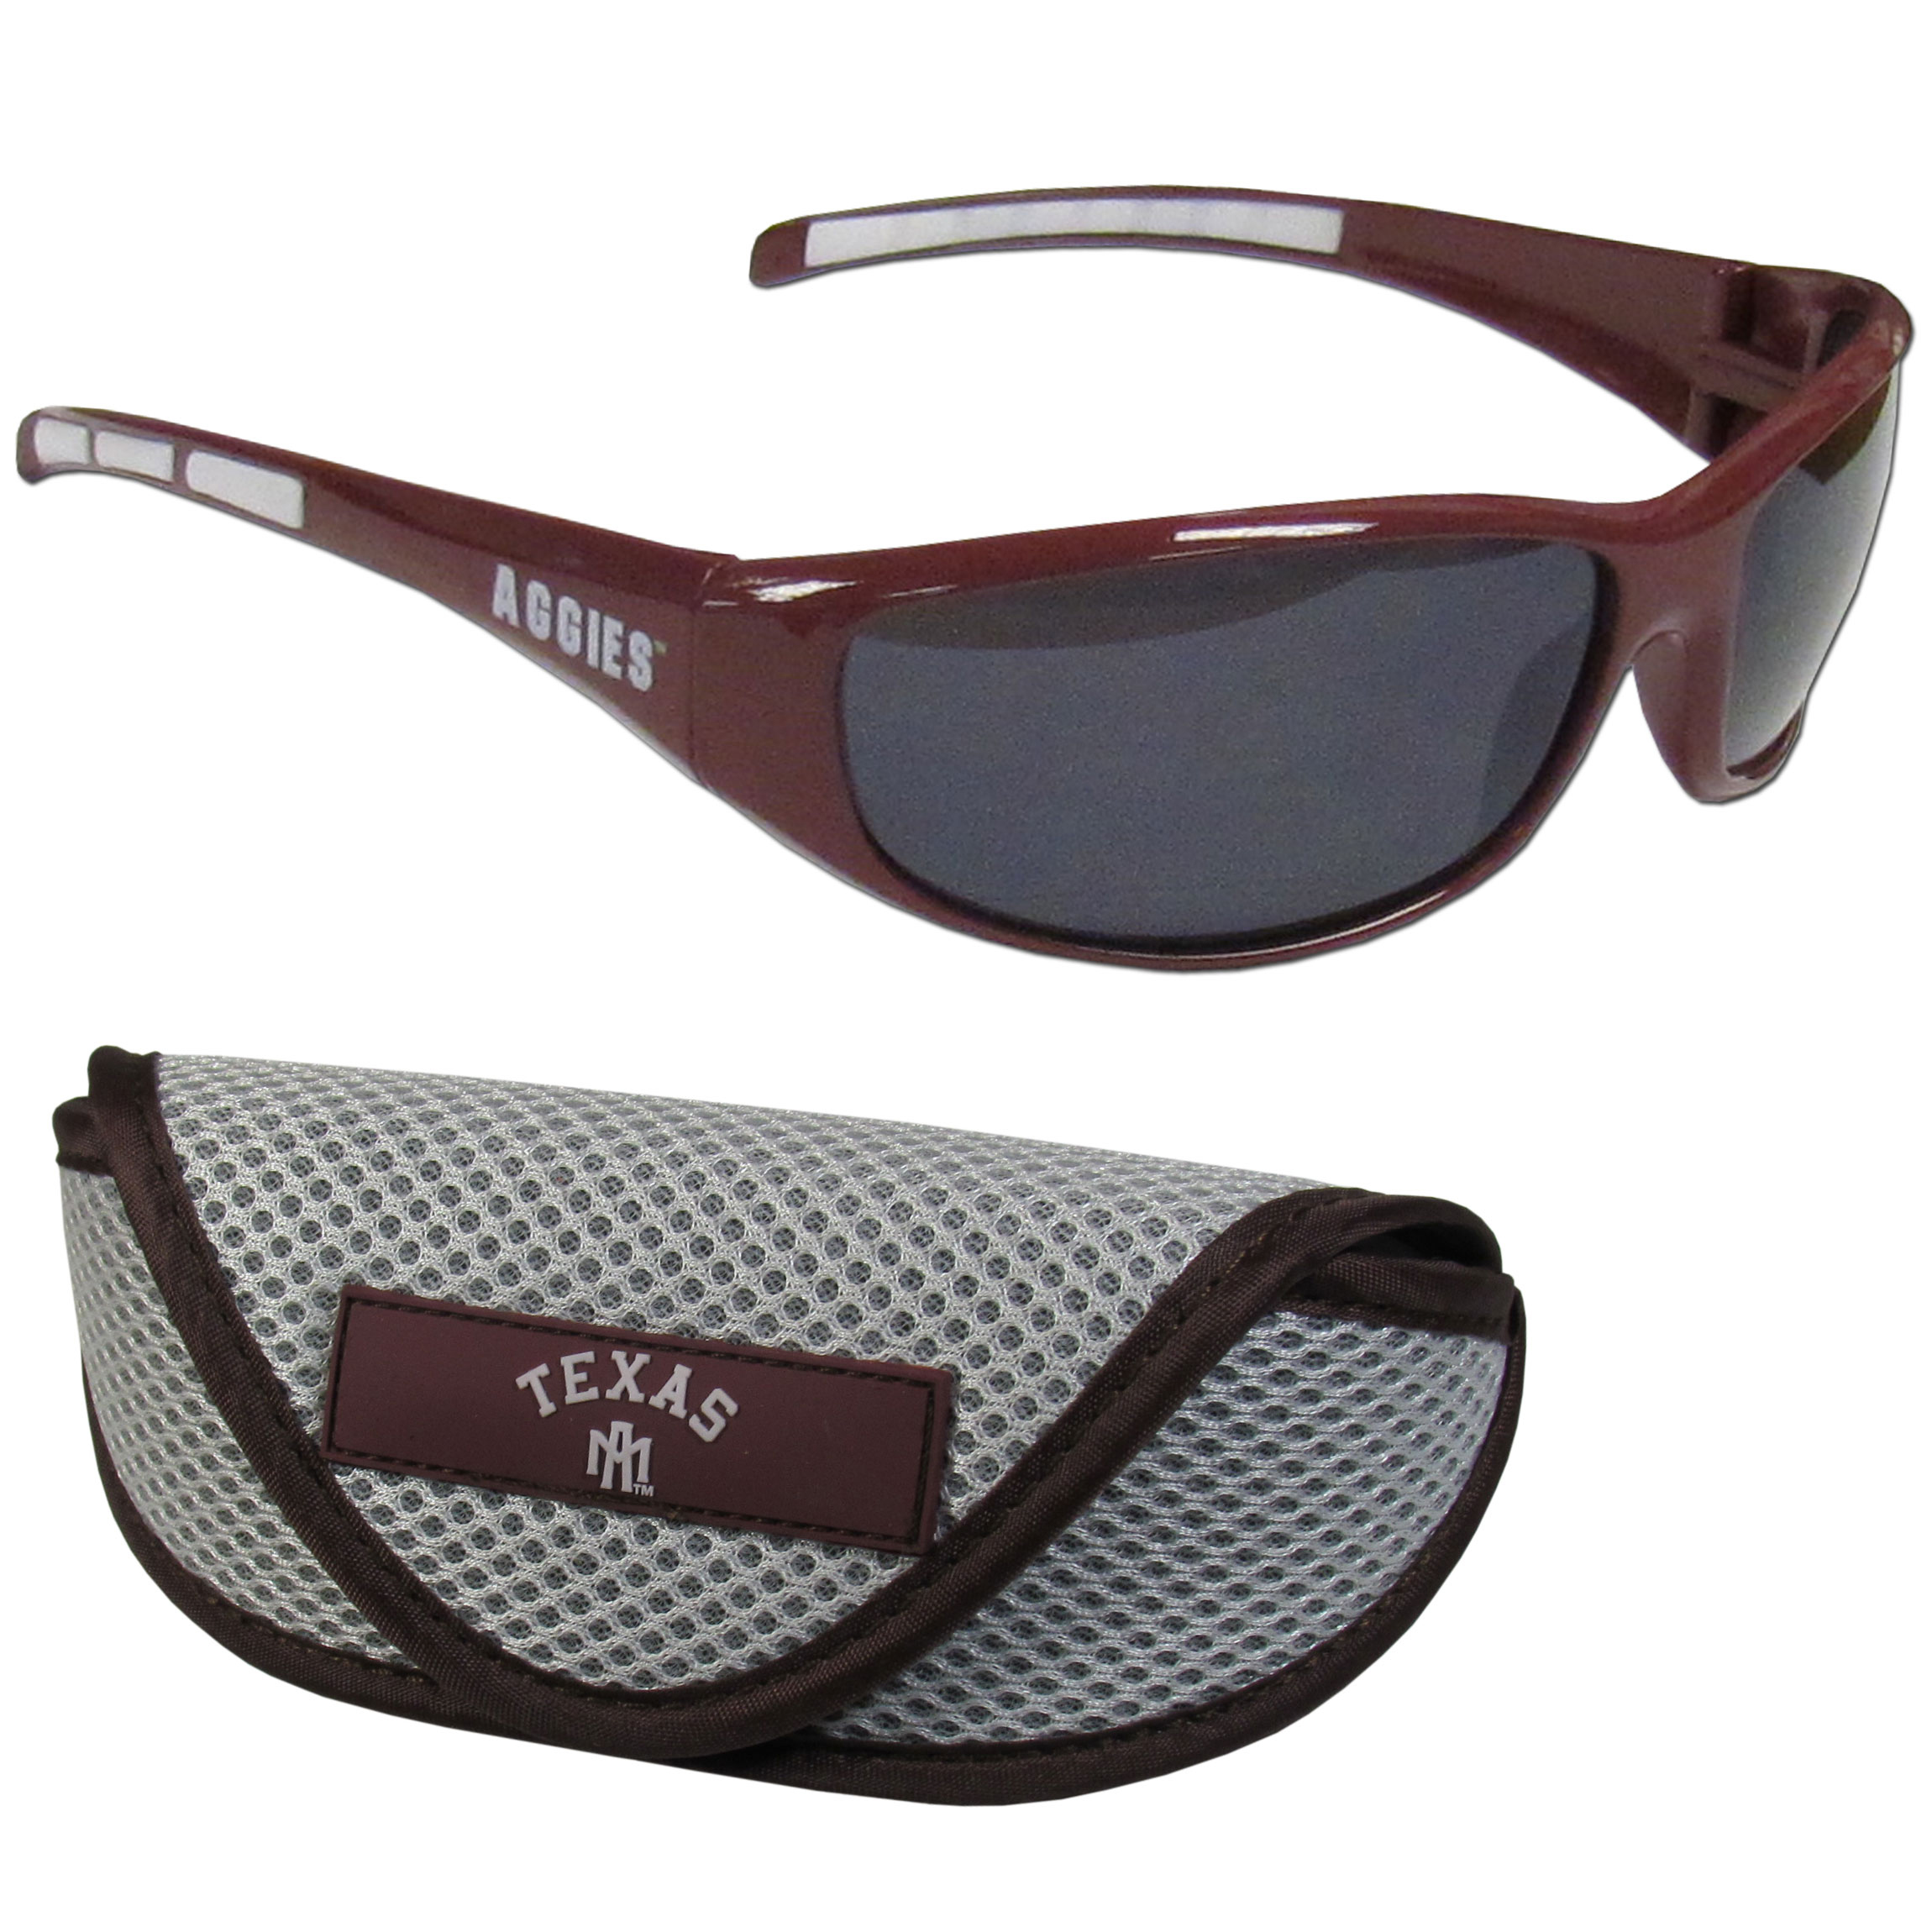 Texas A and M Aggies Wrap Sunglass and Case Set - This great set includes a high quality pair of Texas A & M Aggies wrap sunglasses and soft sport carrying case.